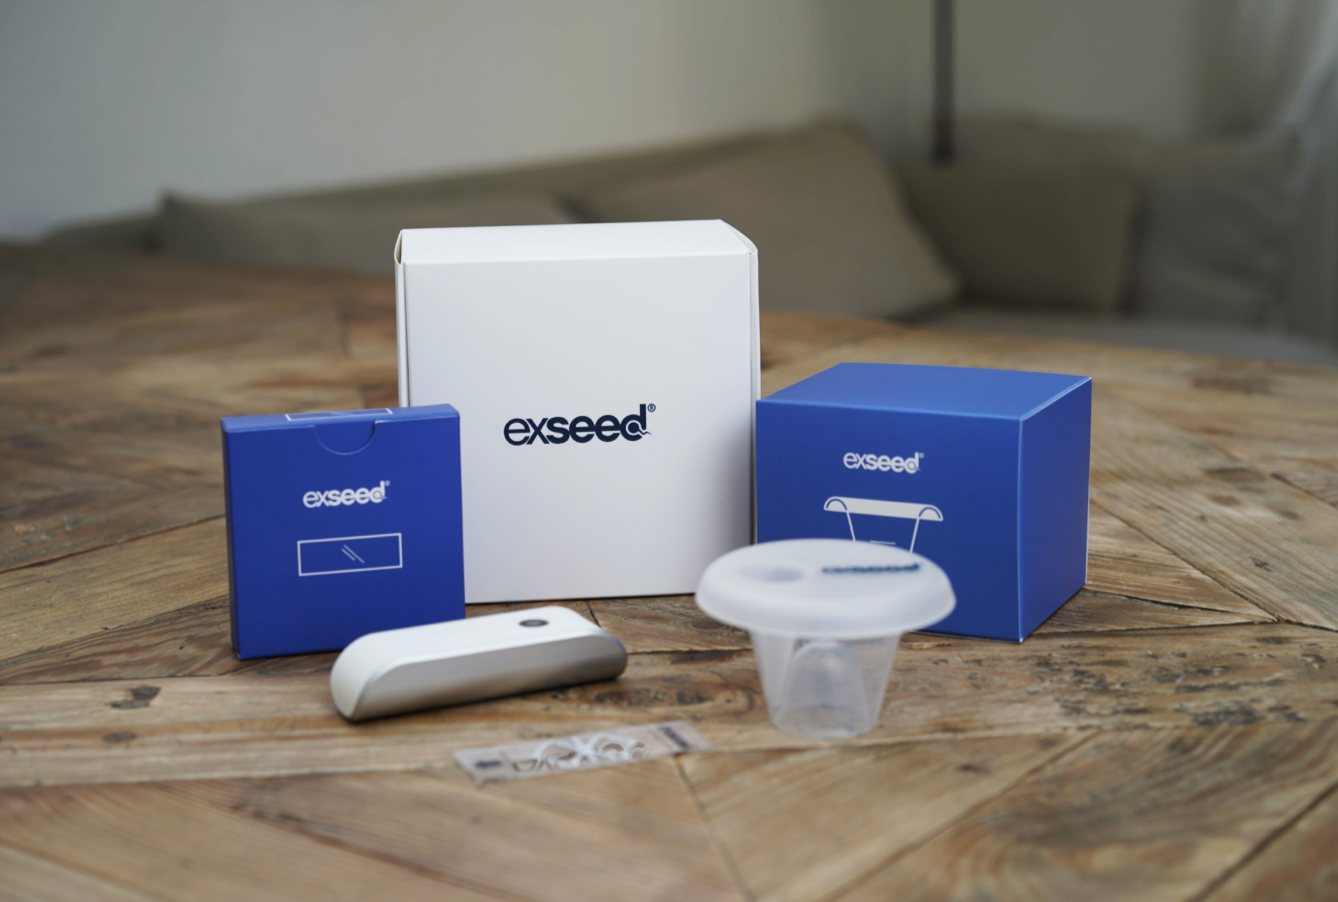 ExSeed puts men's fertility at the forefront with their at-home sperm tests.